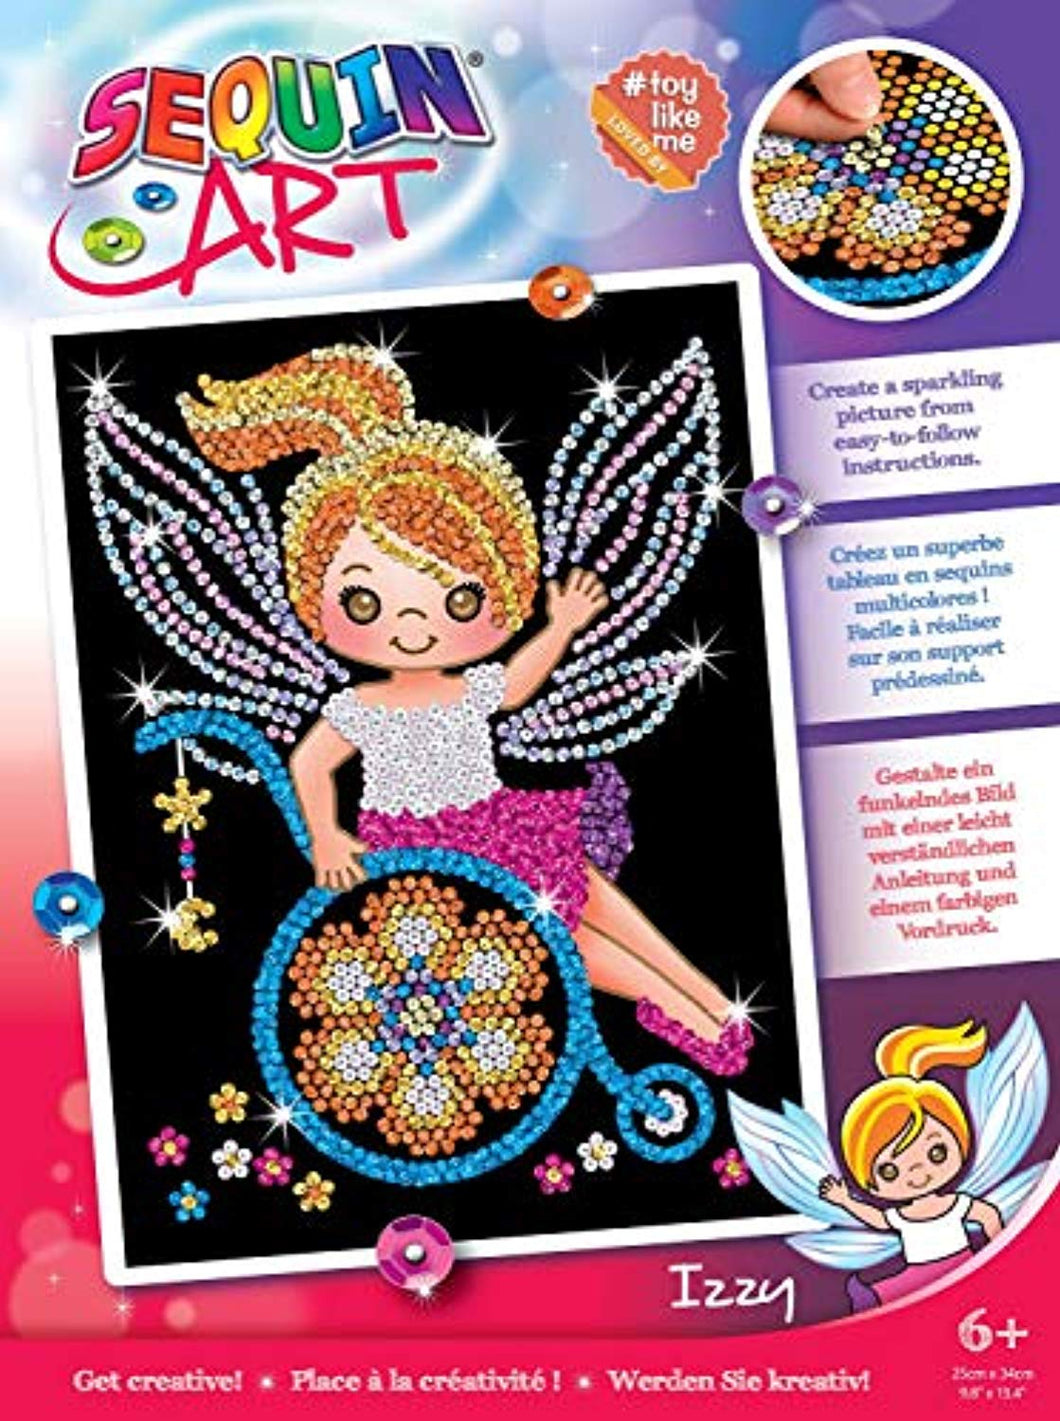 Sequin Art & Toy Like Me 1930 Izzy Fairy Craft Kit From The Red Range 28 x 37 cm - iBuy Africa